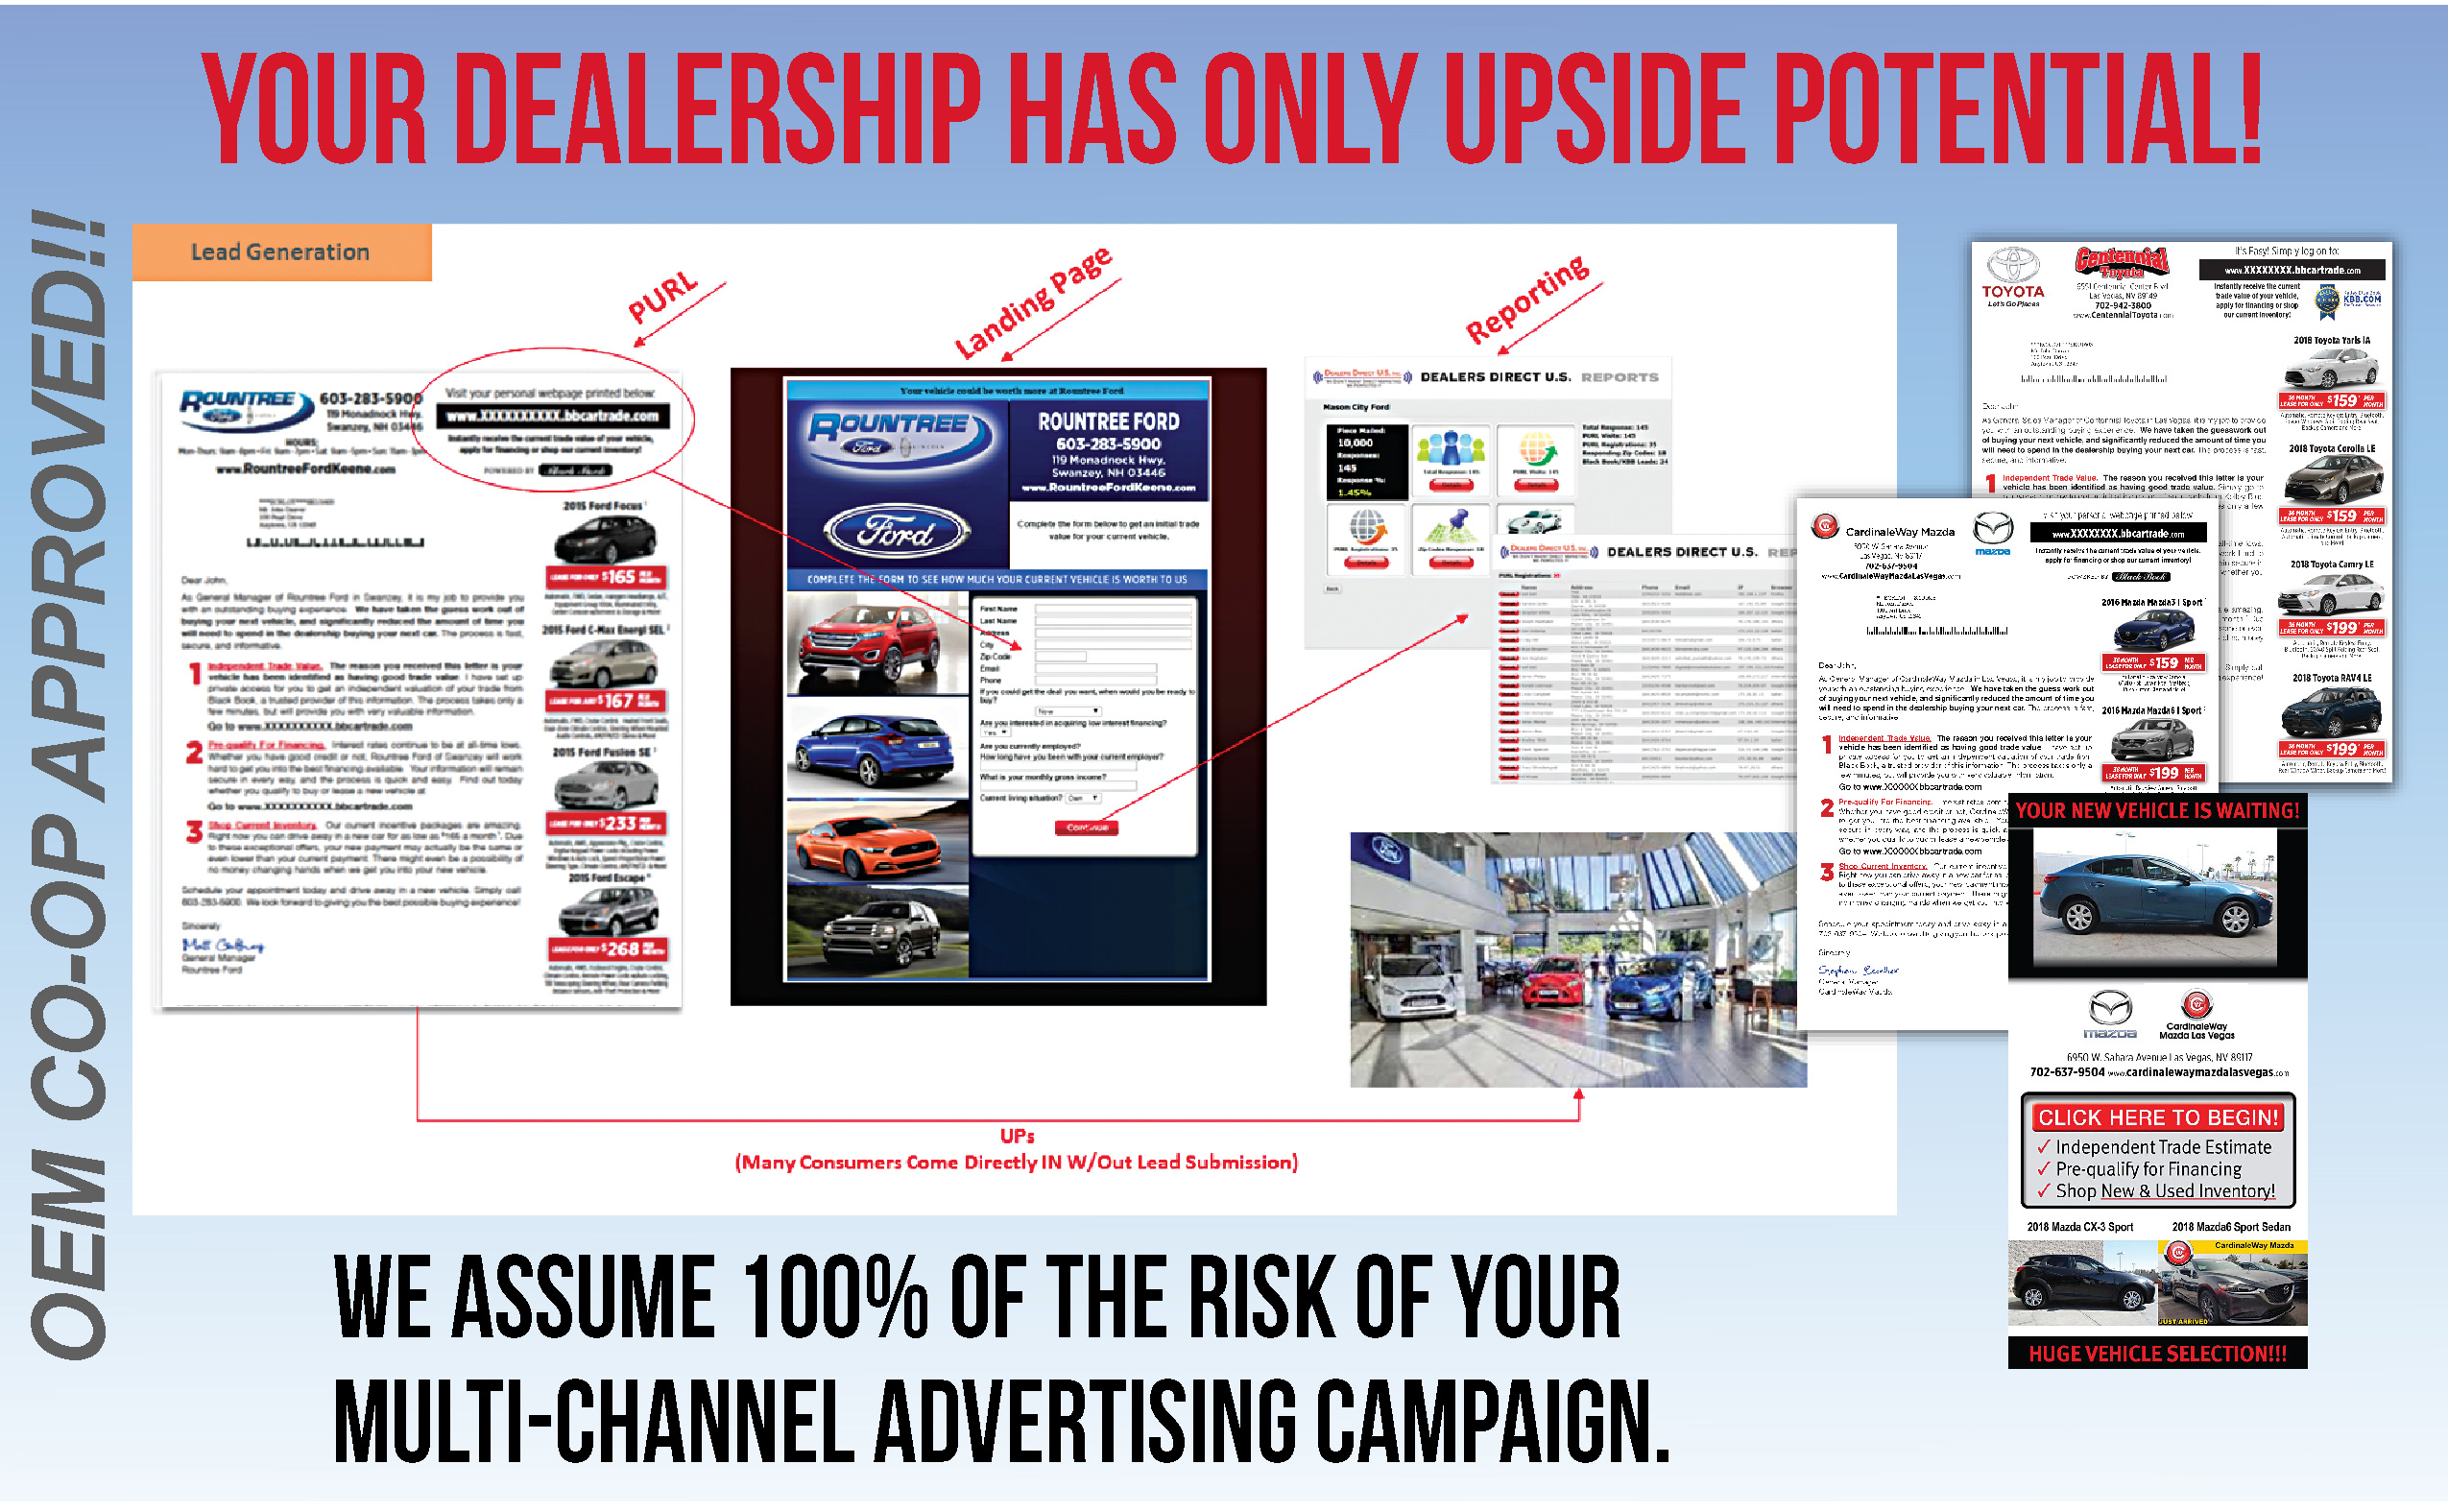 Your dealership has only upside potential. OEM co-op approved. We assume 100 percent of the risk of your Multi-Channel Advertising Campaign.